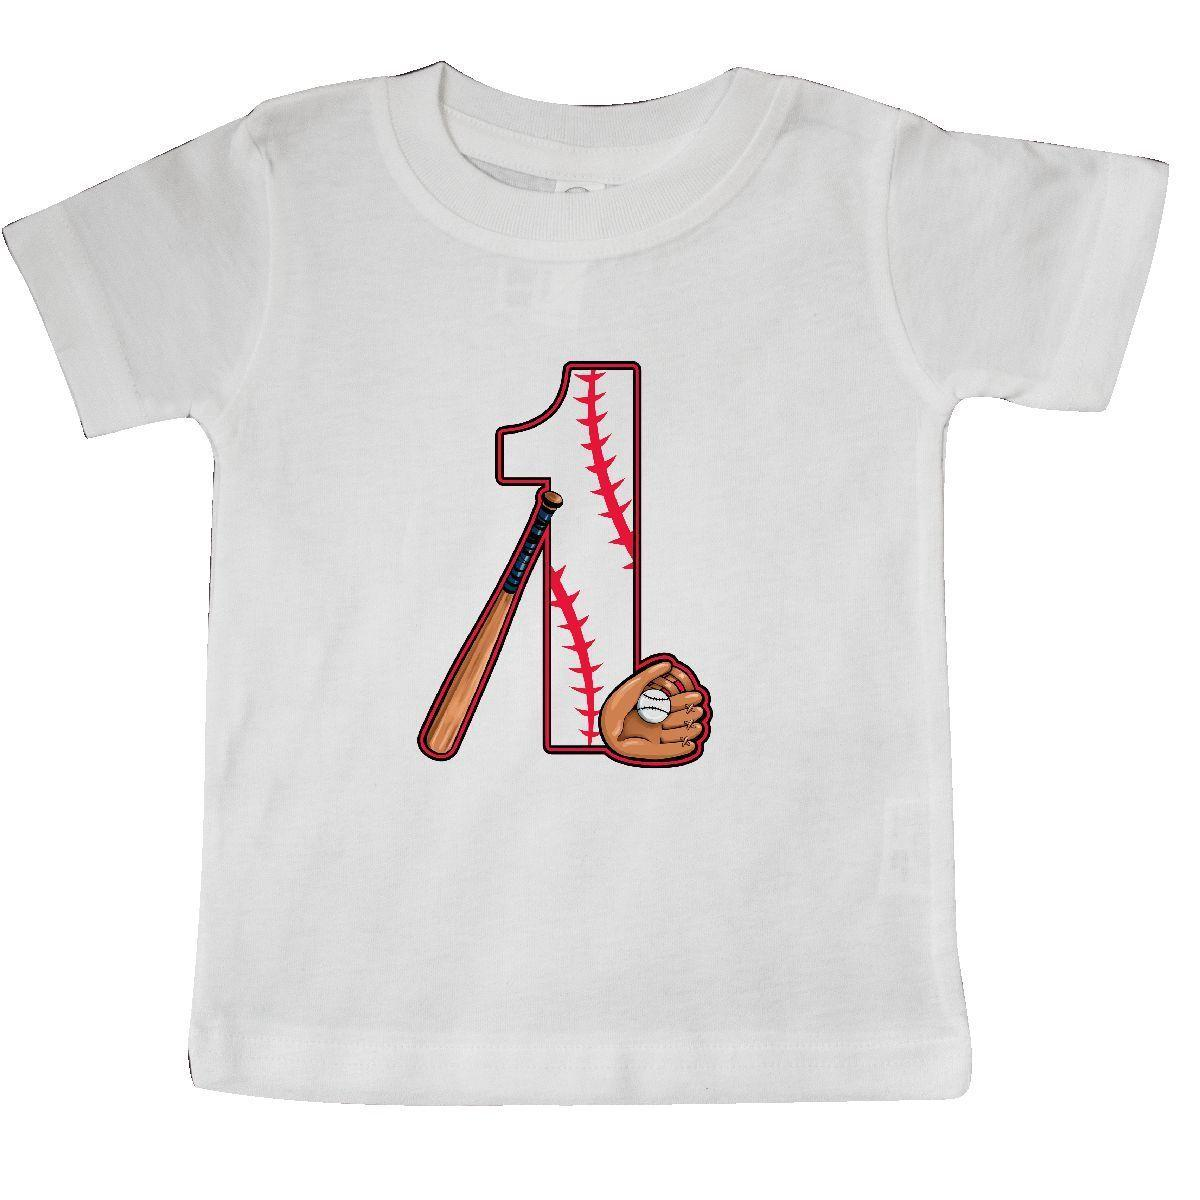 Inktastic Baseball First Birthday One Year Old Baby T Shirt Birthdays 1st 1 Bat Funny Unisex Casual Tee Gift Cool Shirts Designs Web From